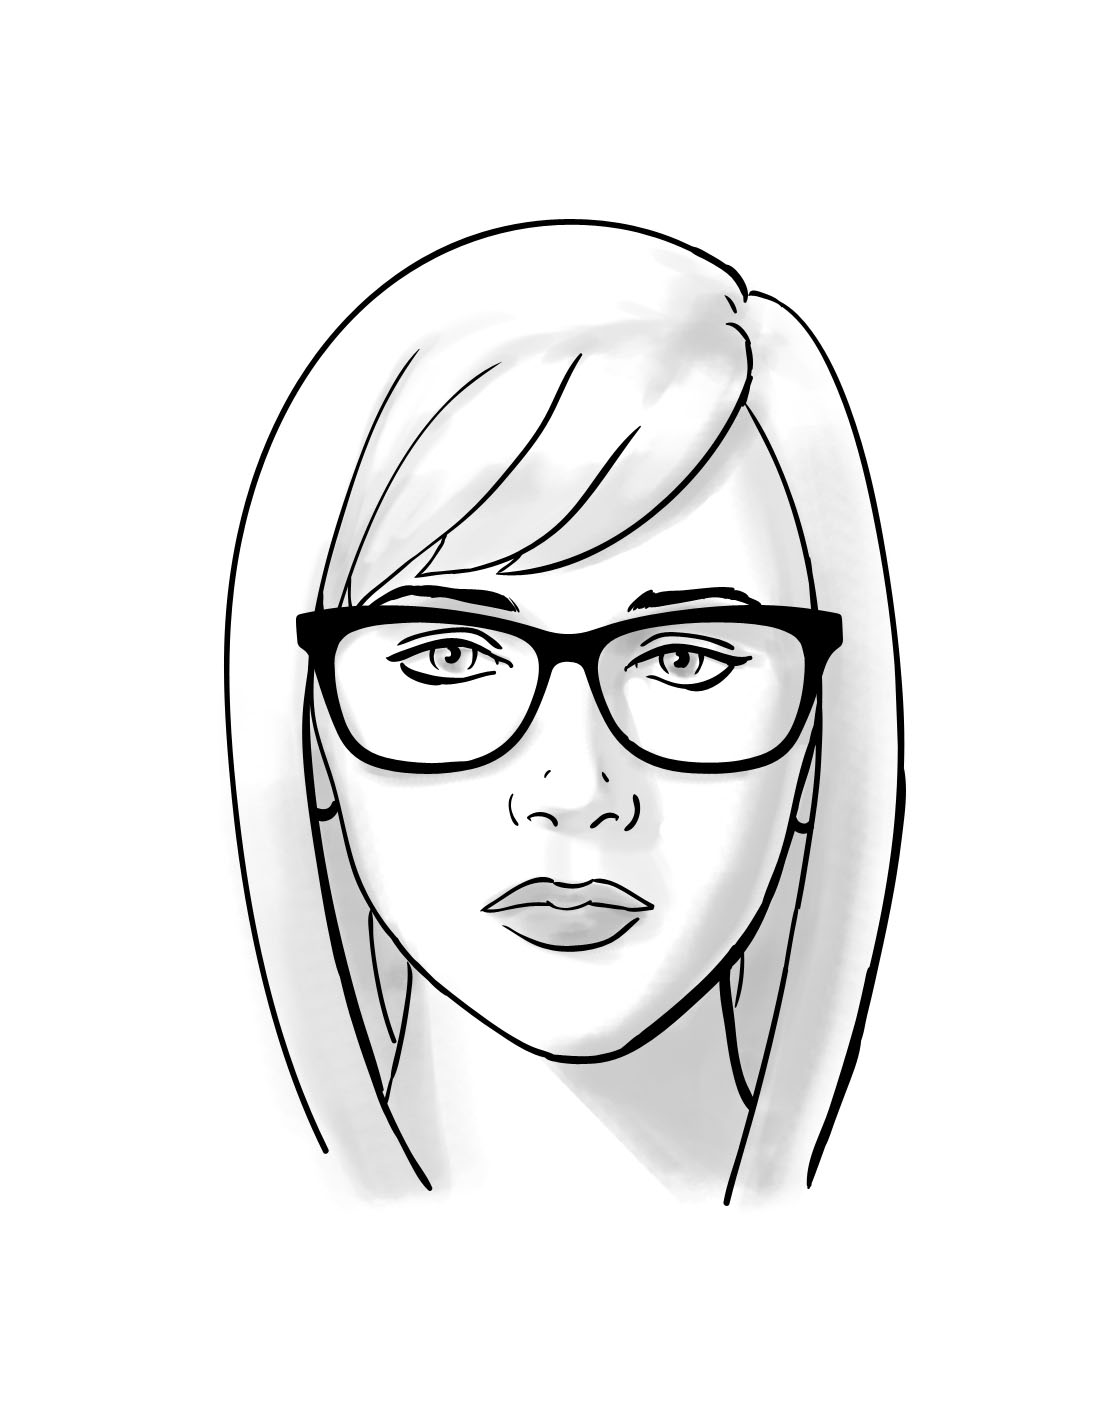 1100x1424 How To Choosing Glasses For Oval Face Shapes